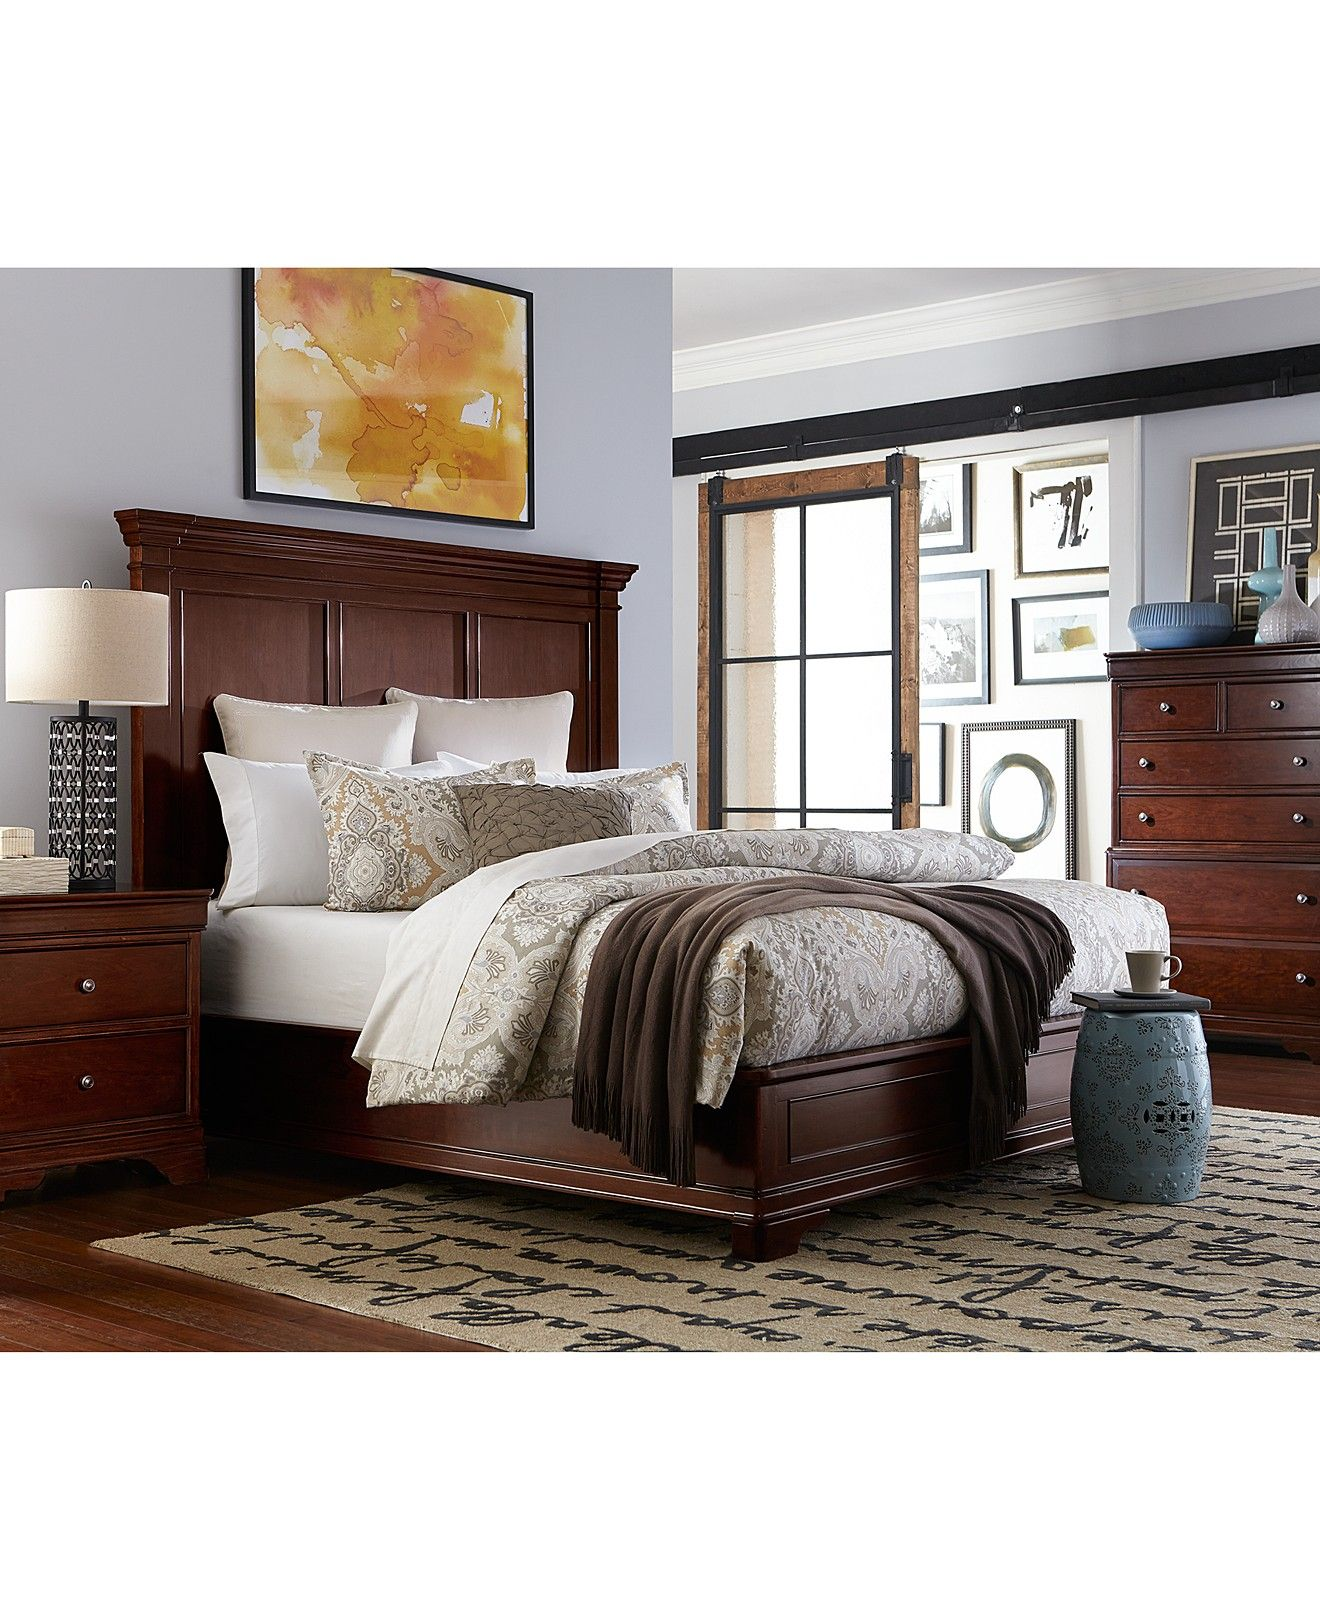 Bond Street Bedroom Collection   Furniture   Macyu0027s